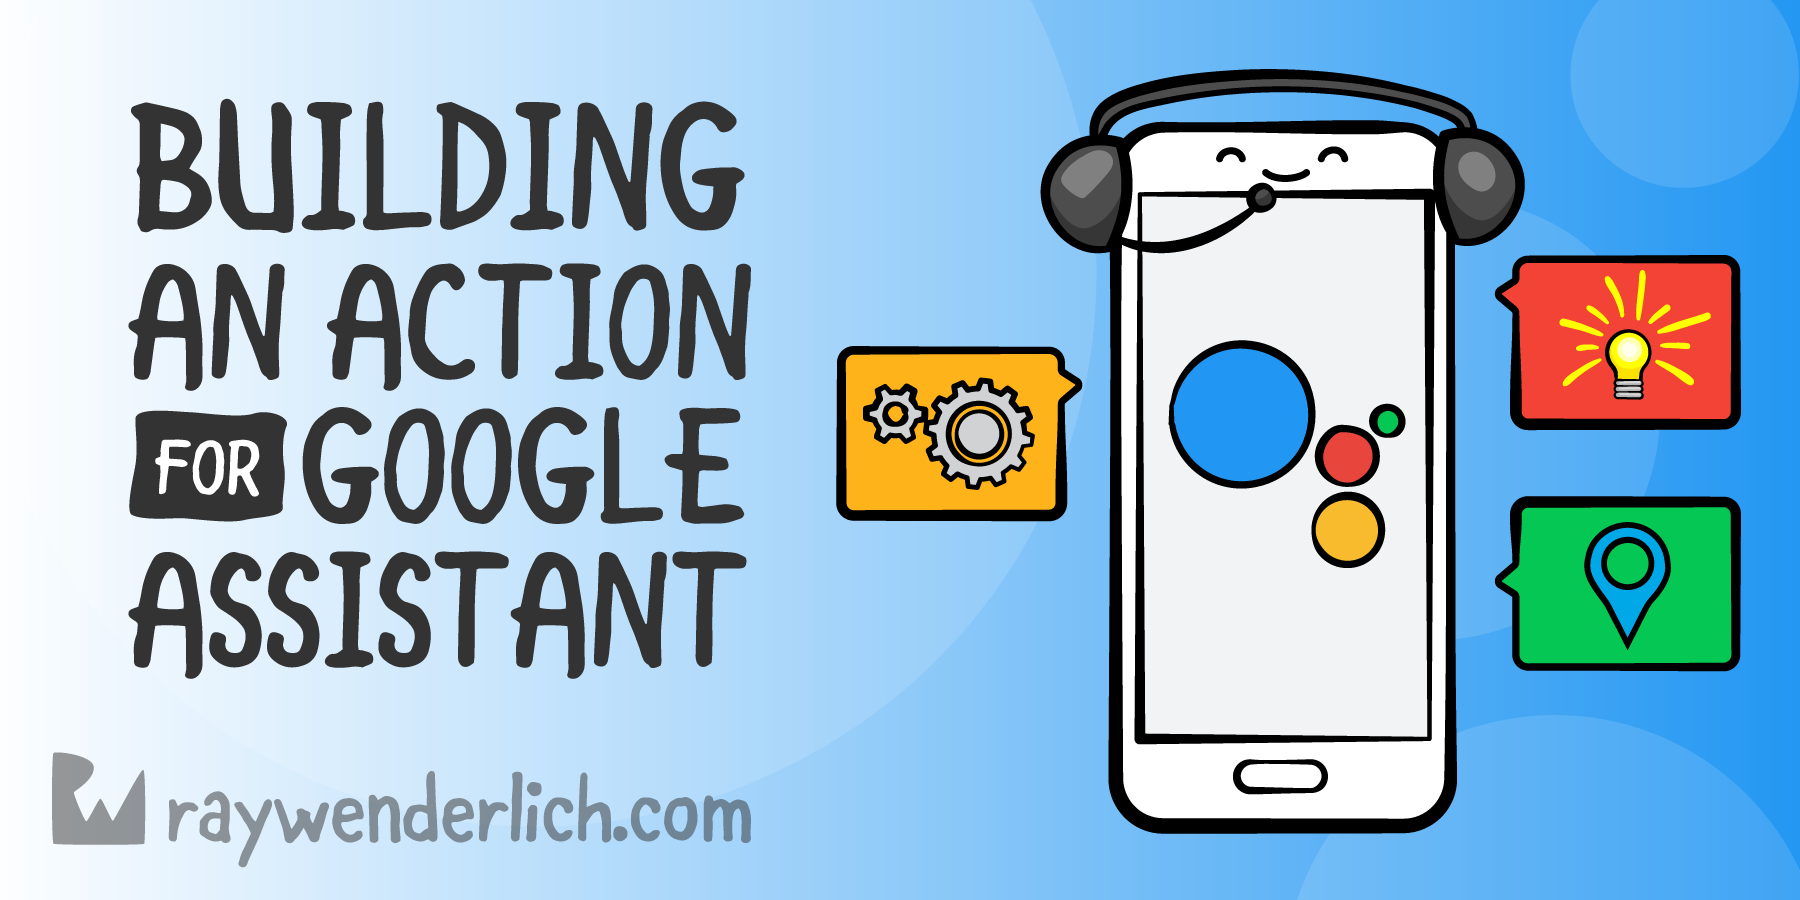 QnA VBage Building an Action for Google Assistant: Getting Started [FREE]